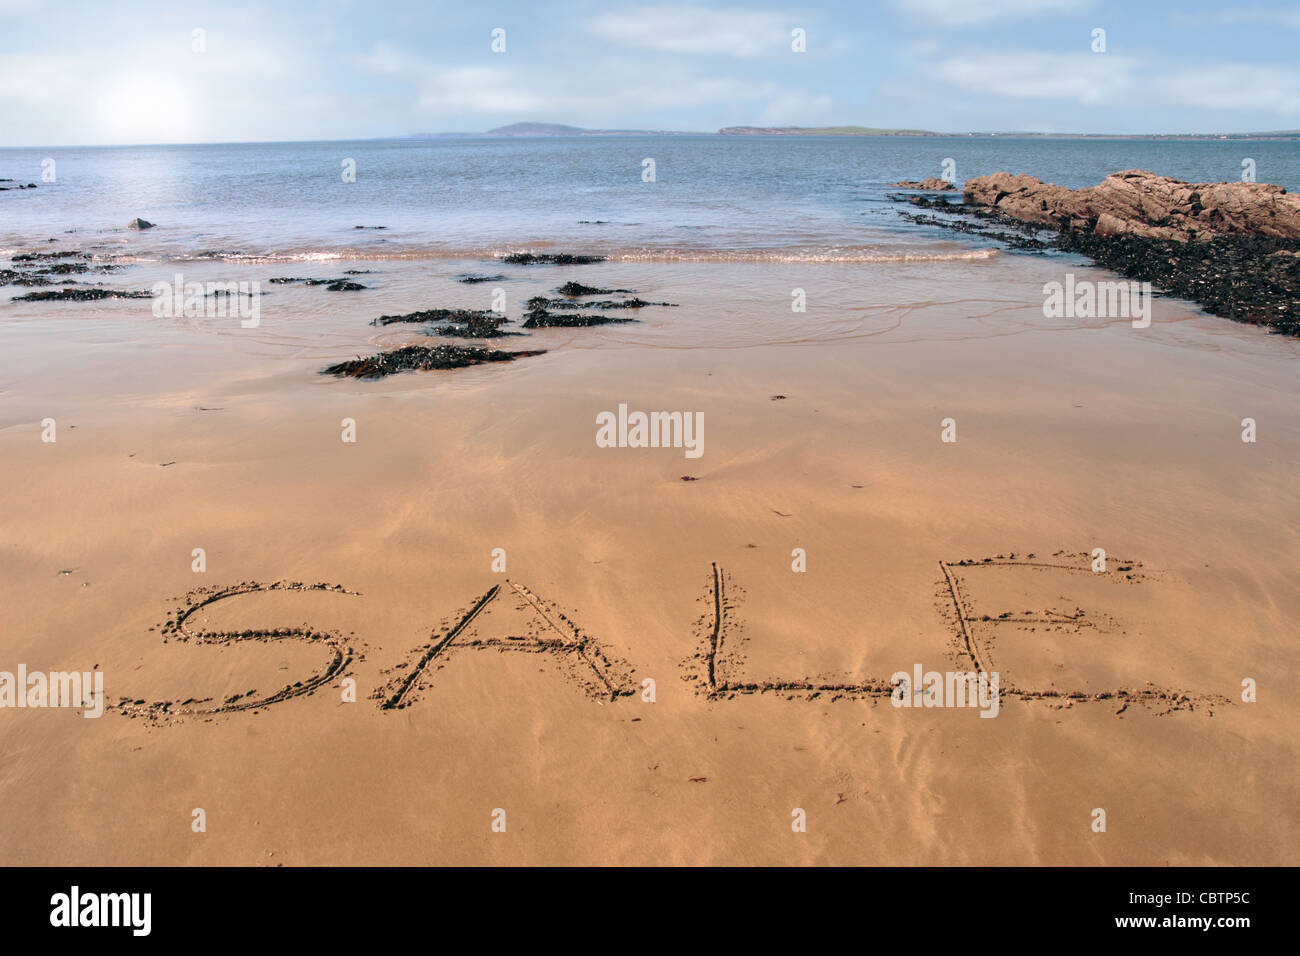 sale inscribed on the beach with waves in the background on a hot sunny day - Stock Image